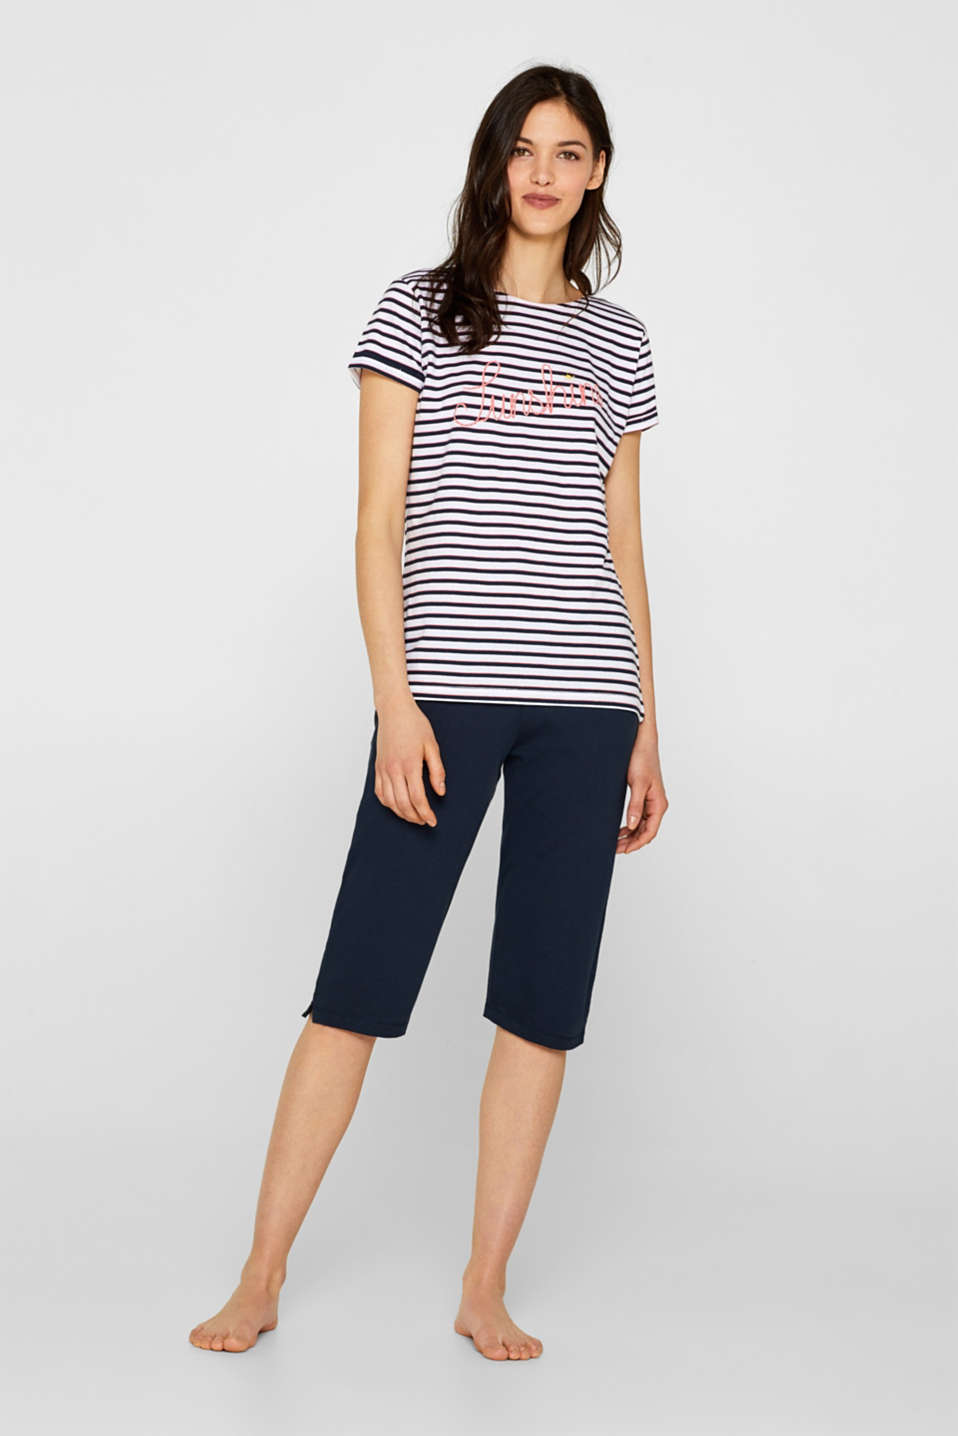 Esprit - Jersey pyjamas with a statement print, 100% cotton